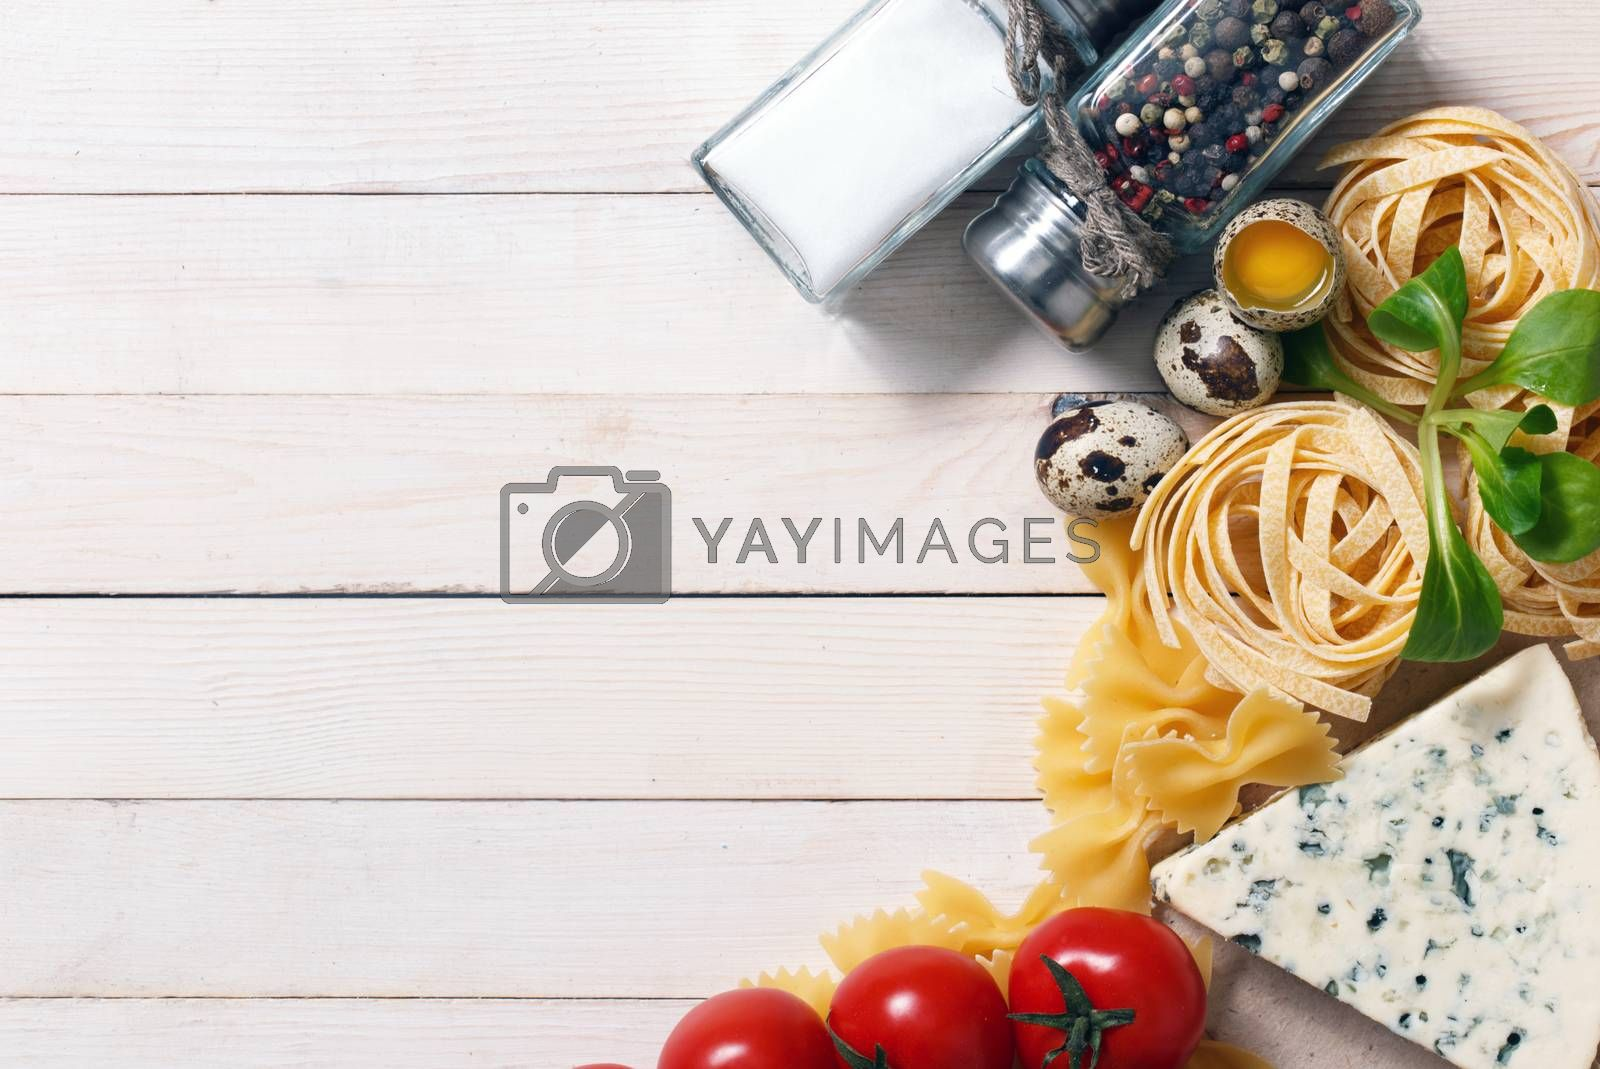 Royalty free image of Overhead view of ingredients for an Italian pasta recipe by primopiano